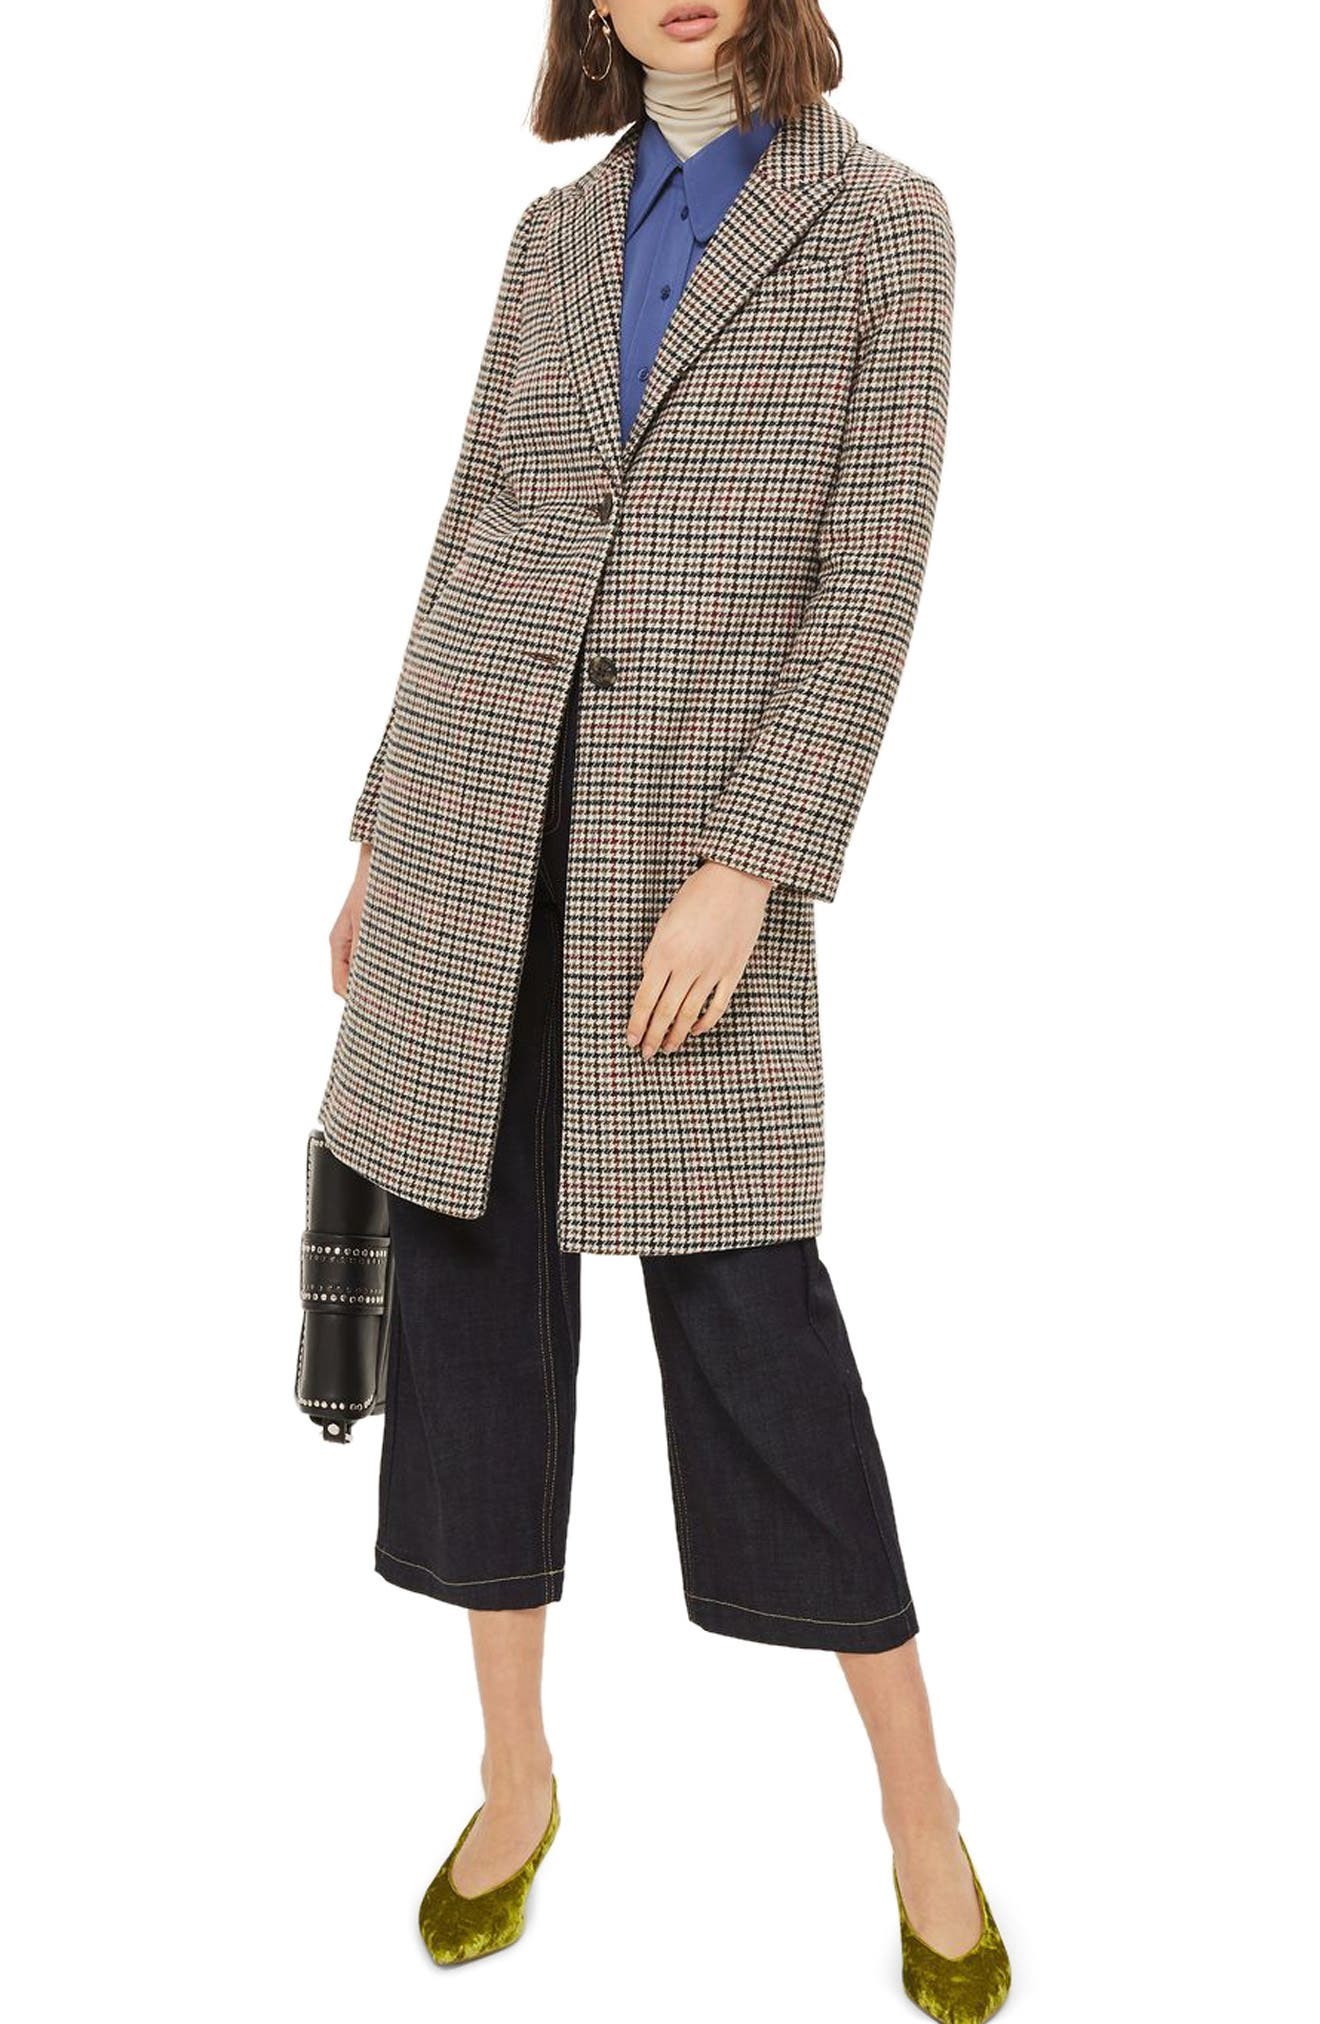 Topshop Bonded Check Coat